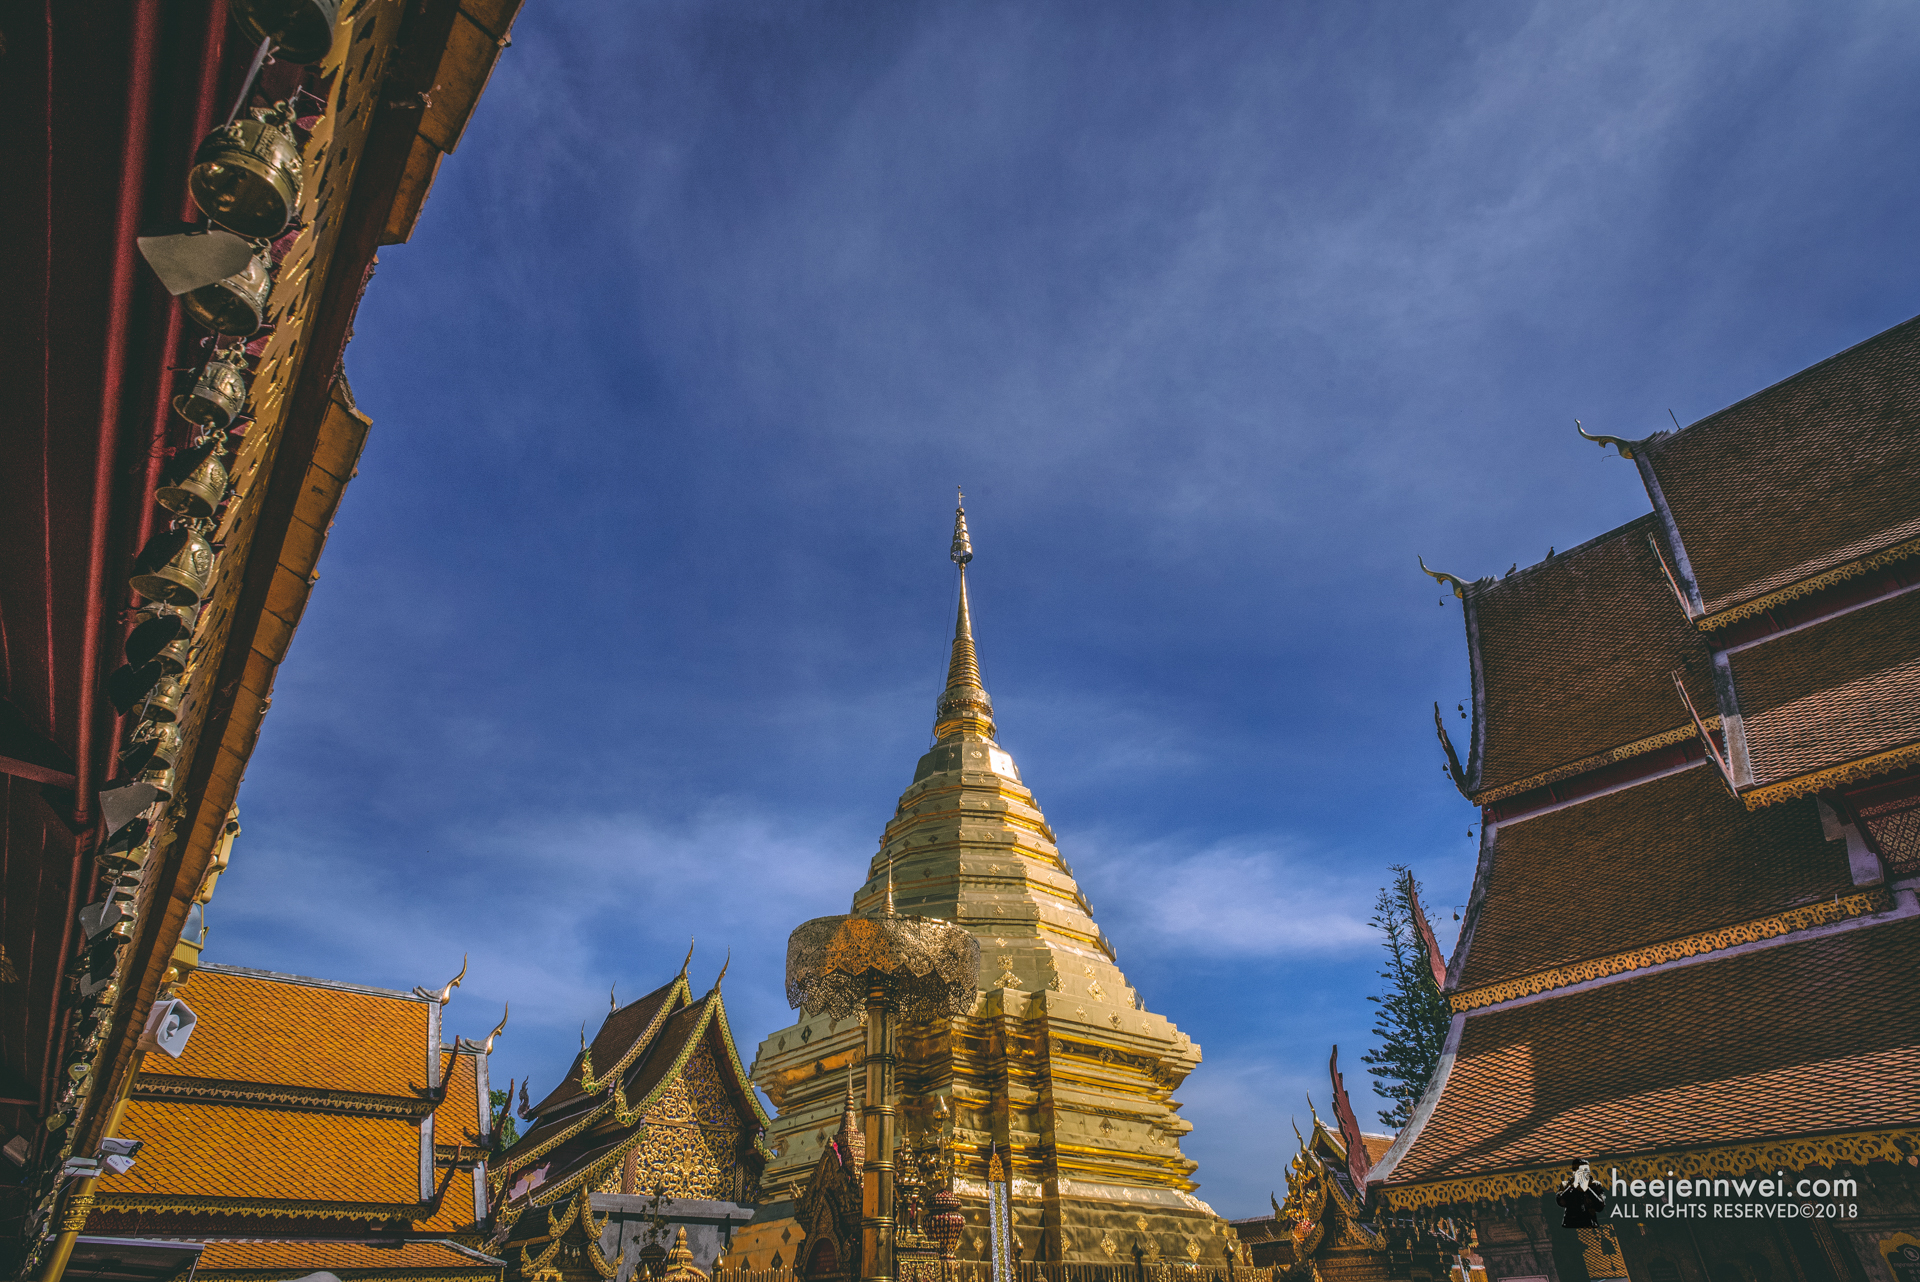 The temple is arranged around a central region copper plated chedi - which is the most holy area of the temple grounds.